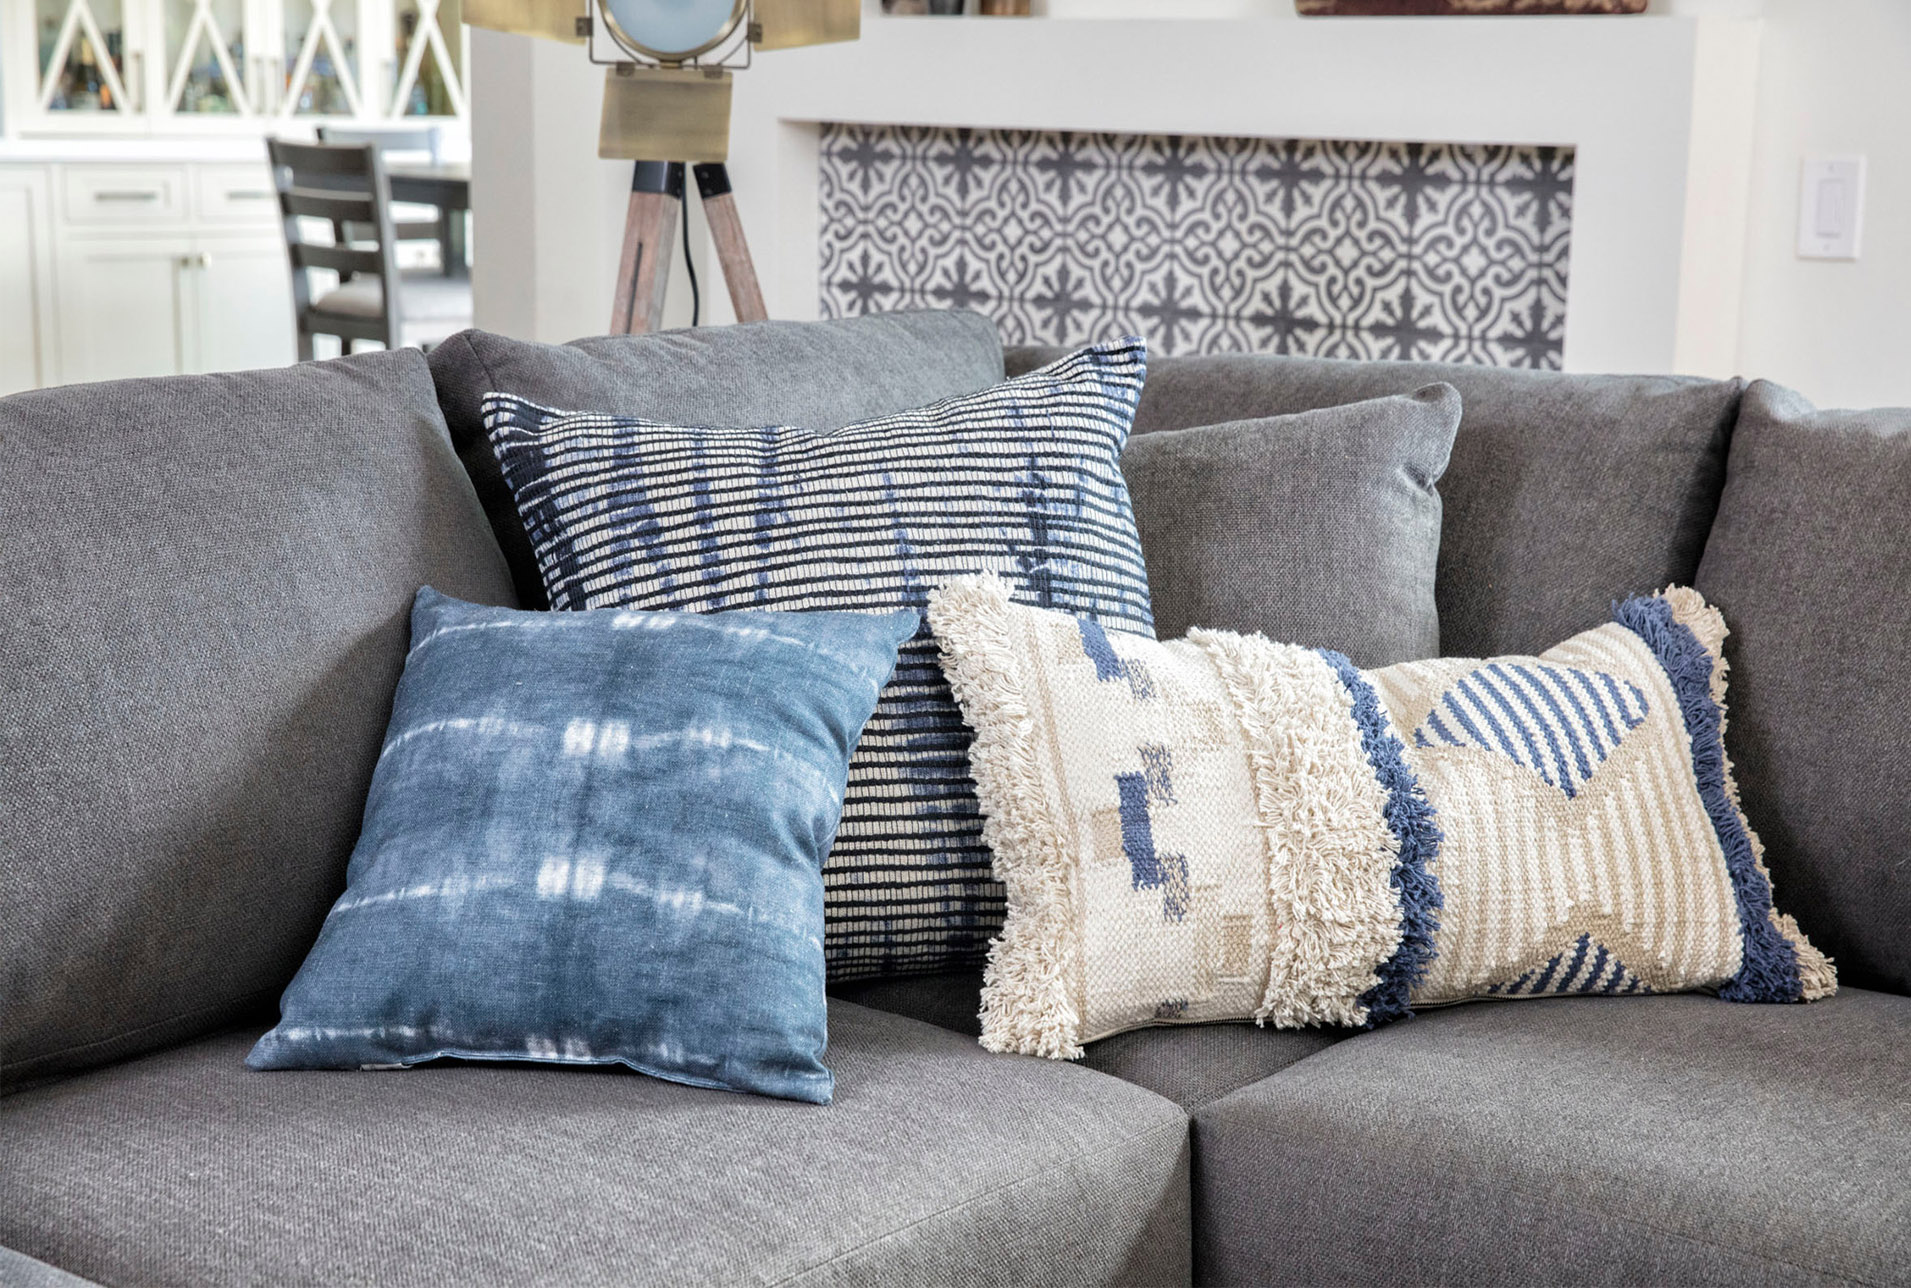 Accent Pillow Aged Denim 22x22 In 2020 Accent Pillows Living Room Modern Couch Pillows Decorative Sofa Pillows